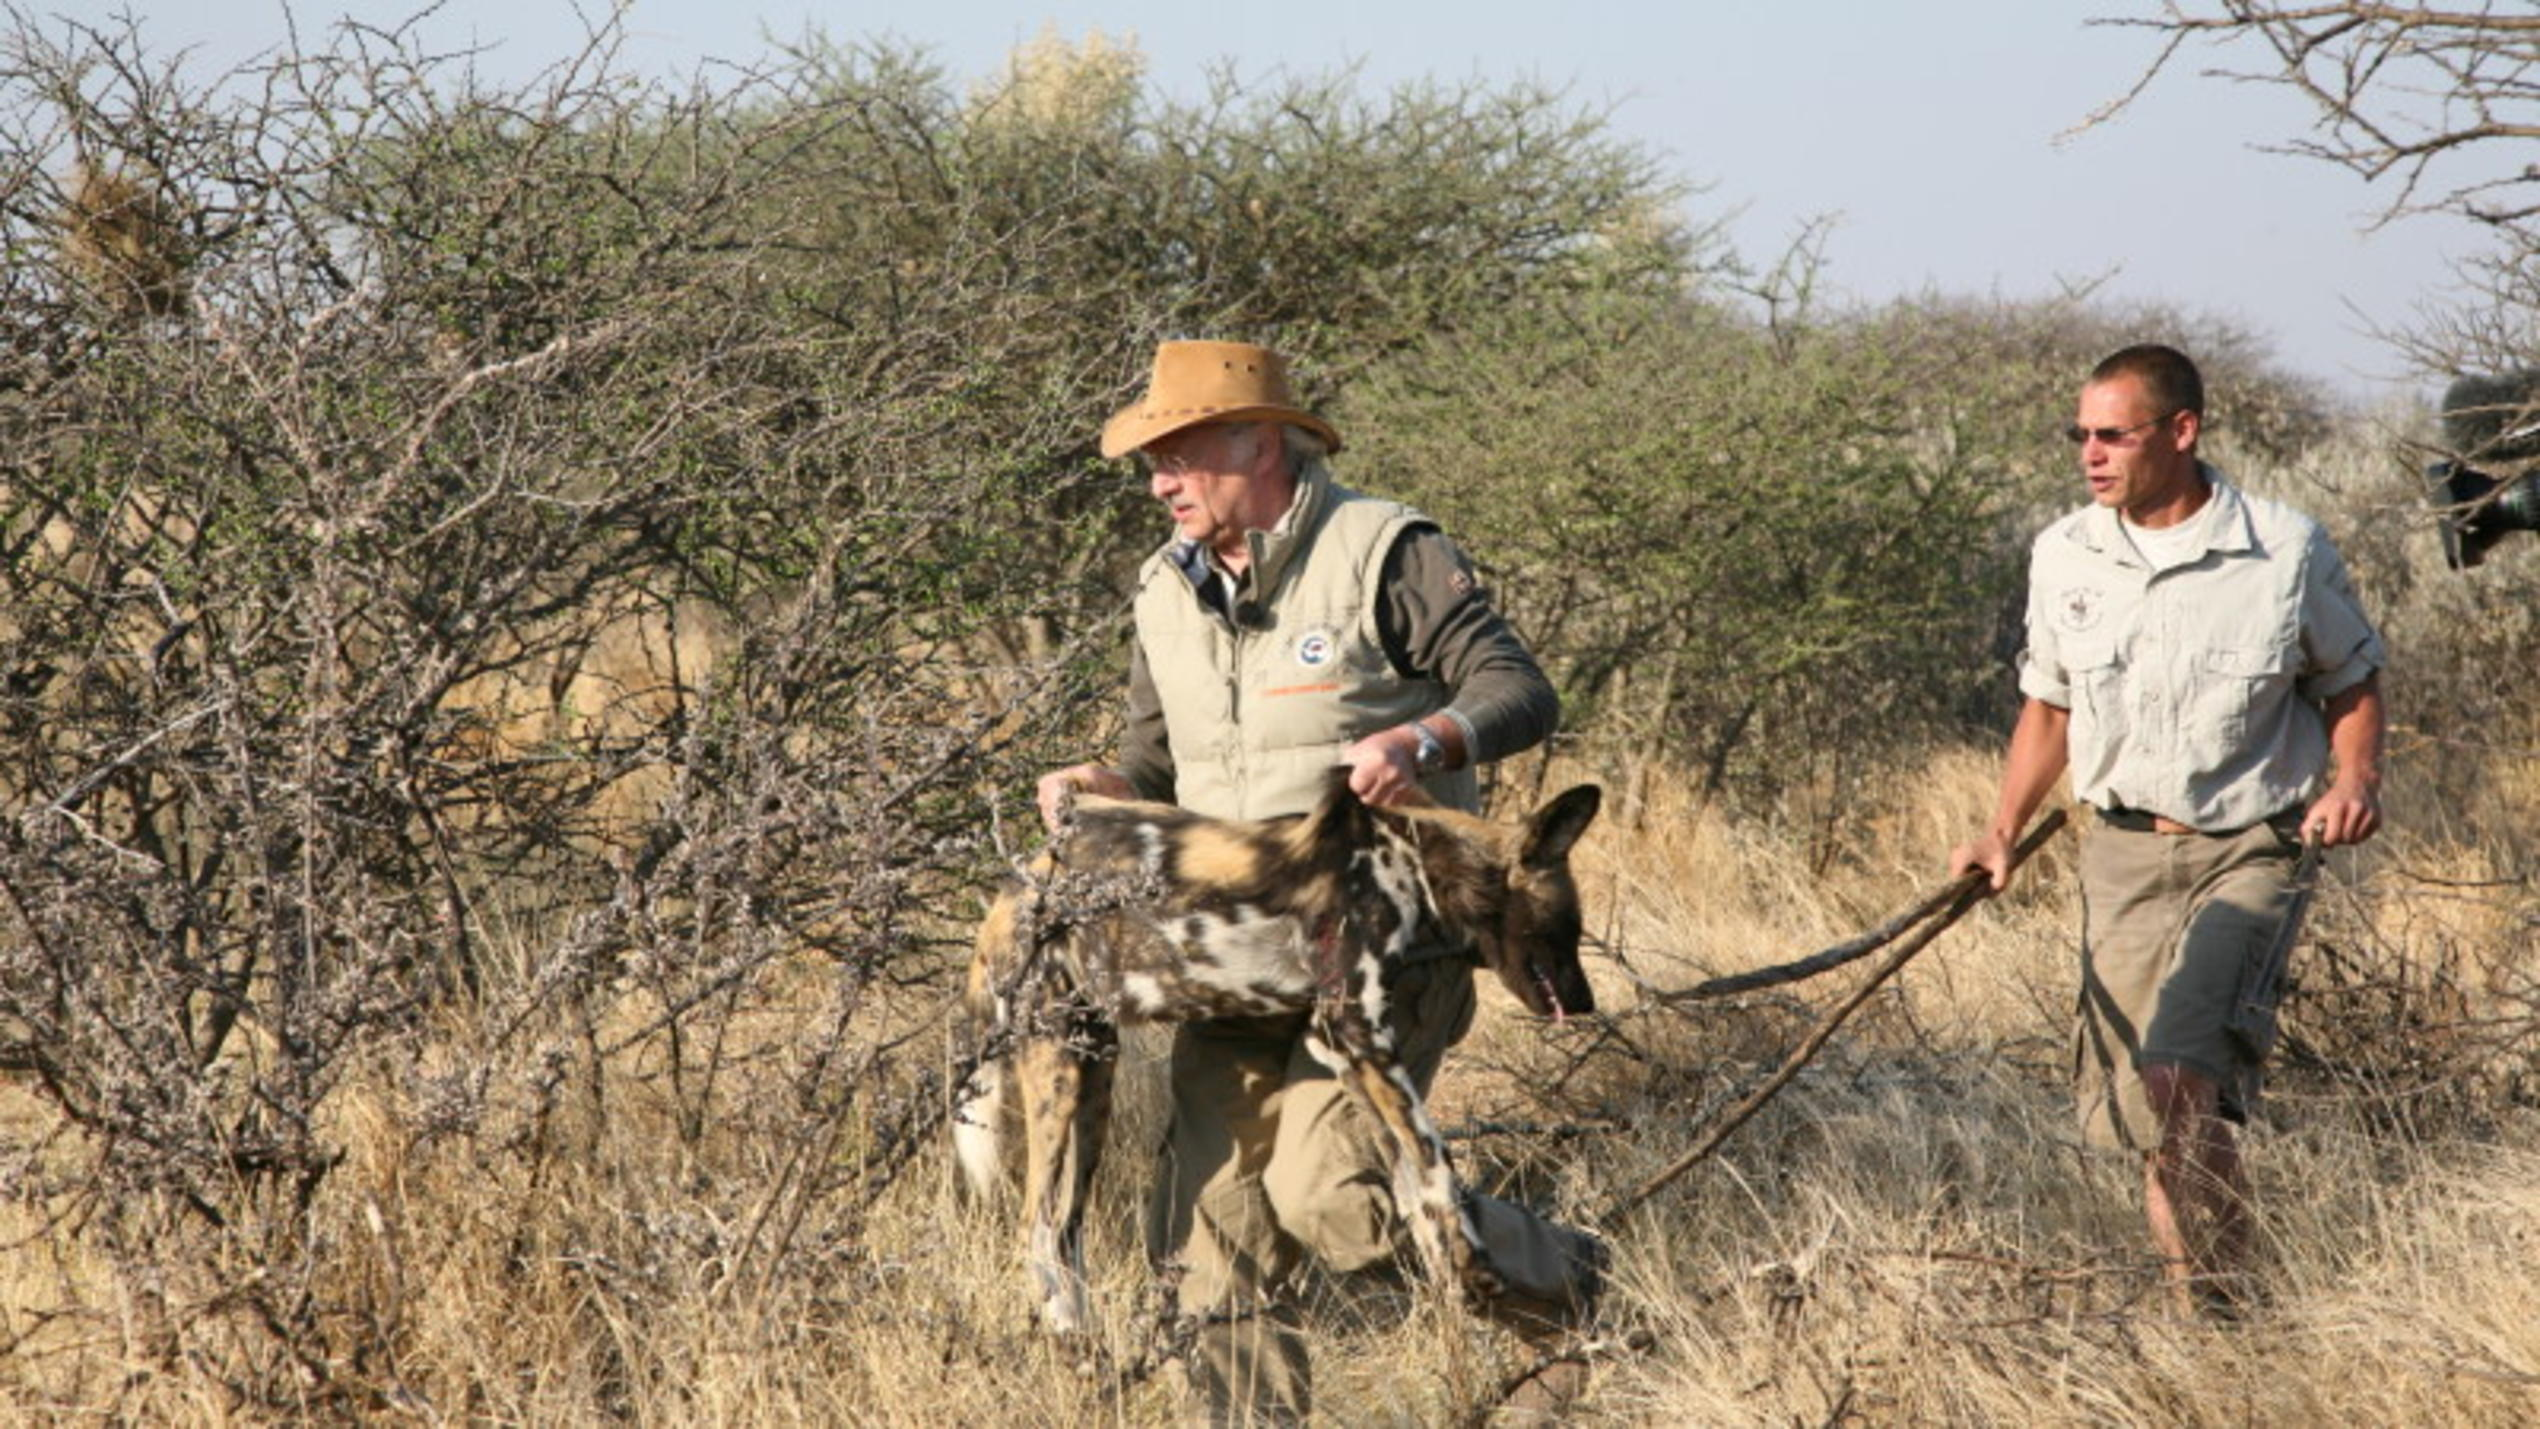 hundkatzemaus-Tierarzt Dr. Wolf in Namibia